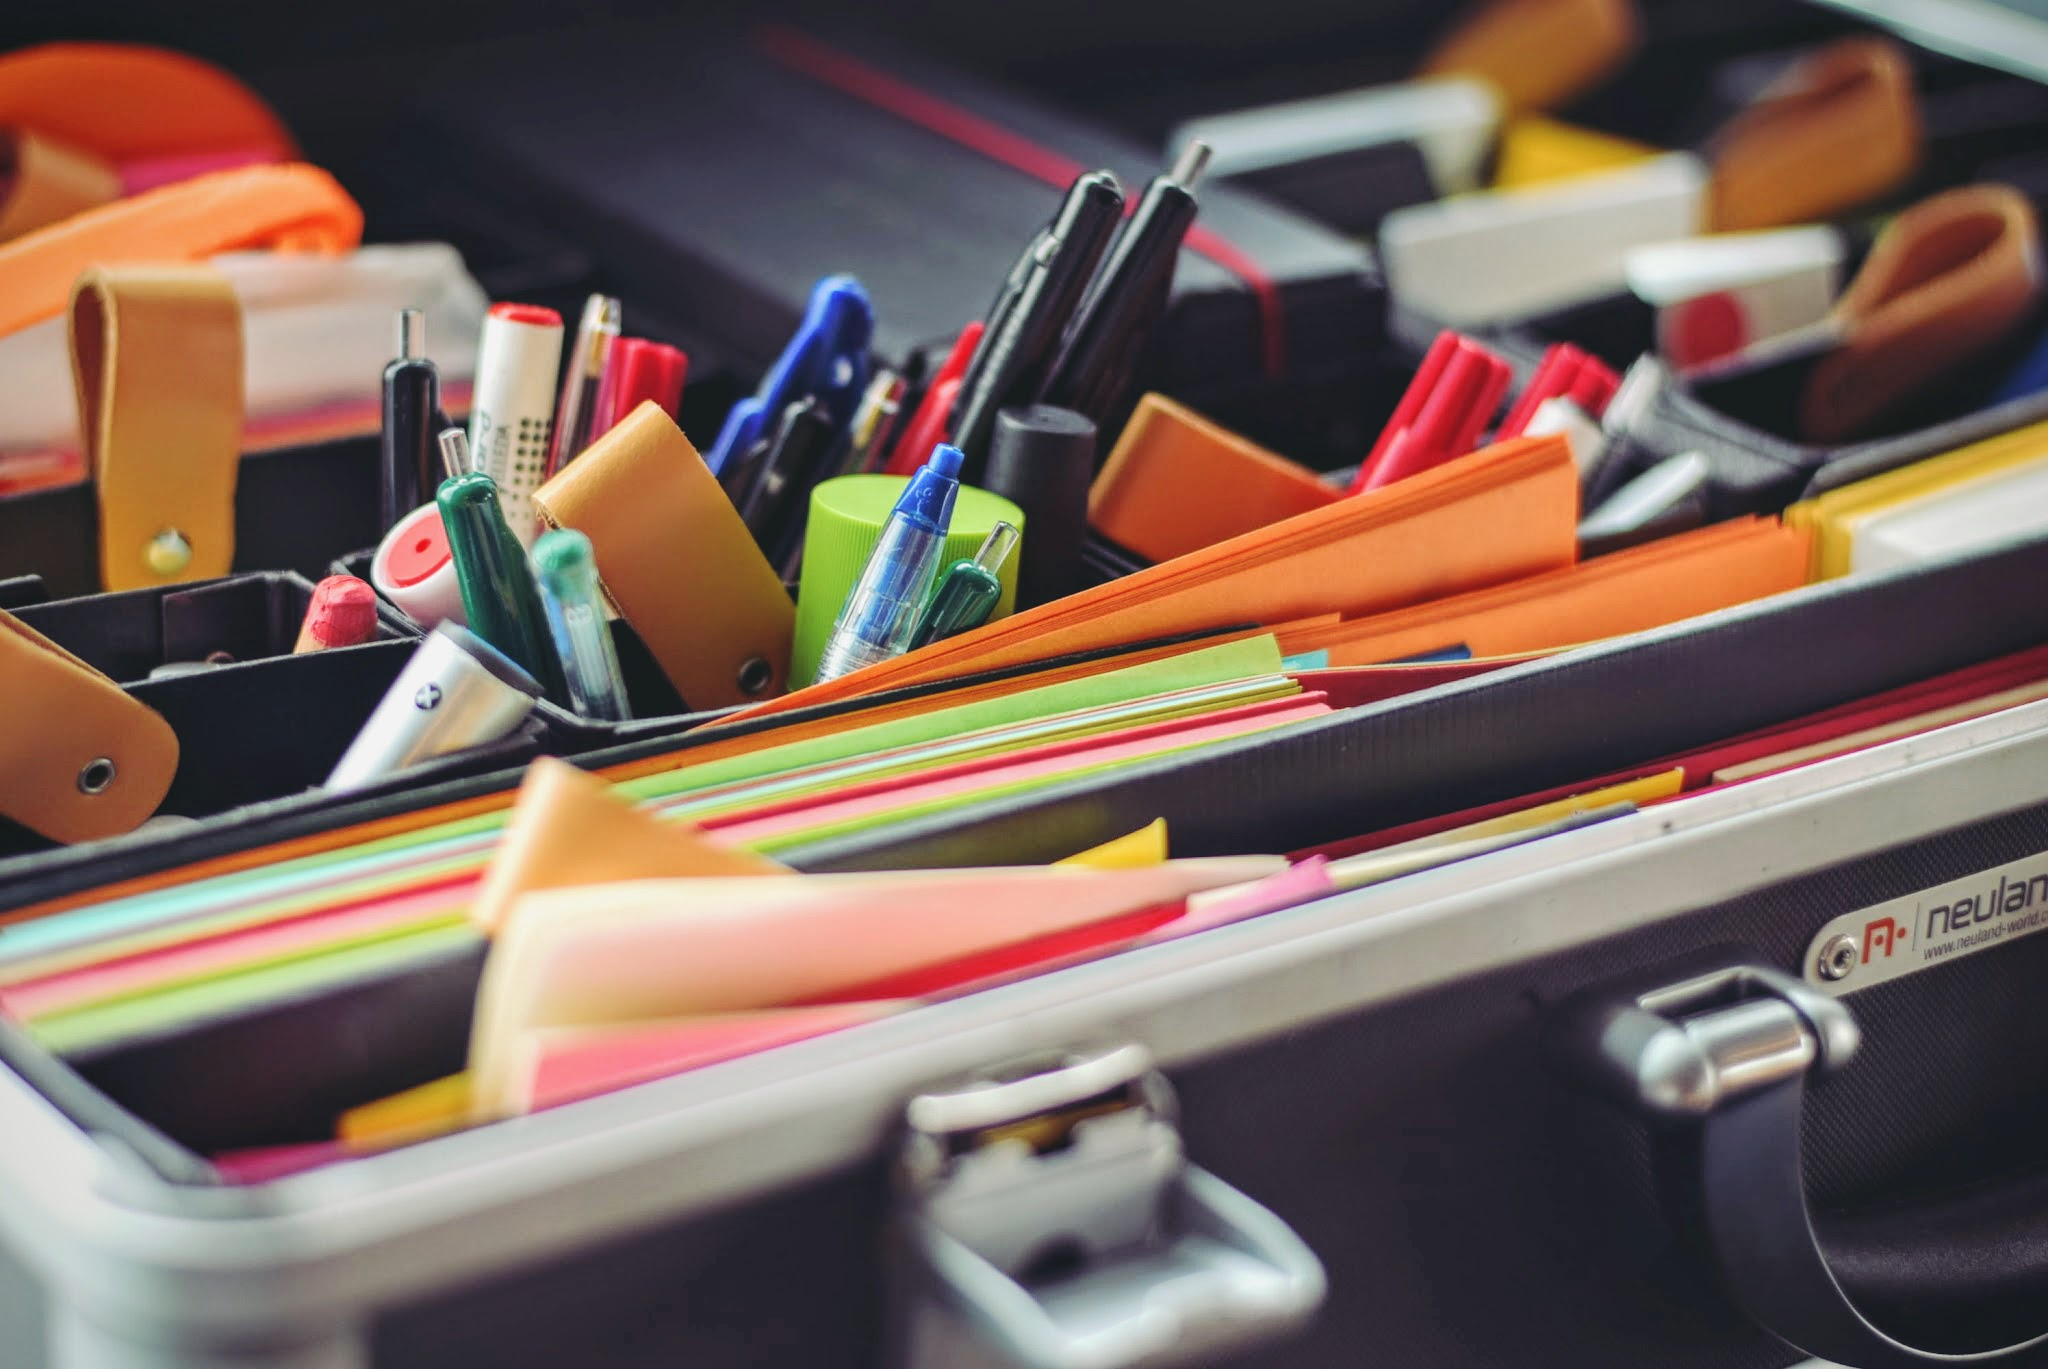 Office Supplies - Three-ring binders, manila folders, pencils & pens… these are essential rehearsal items we always need to replenish. If you have some gently used supplies taking up drawer space, we'd be happy to put them to work.